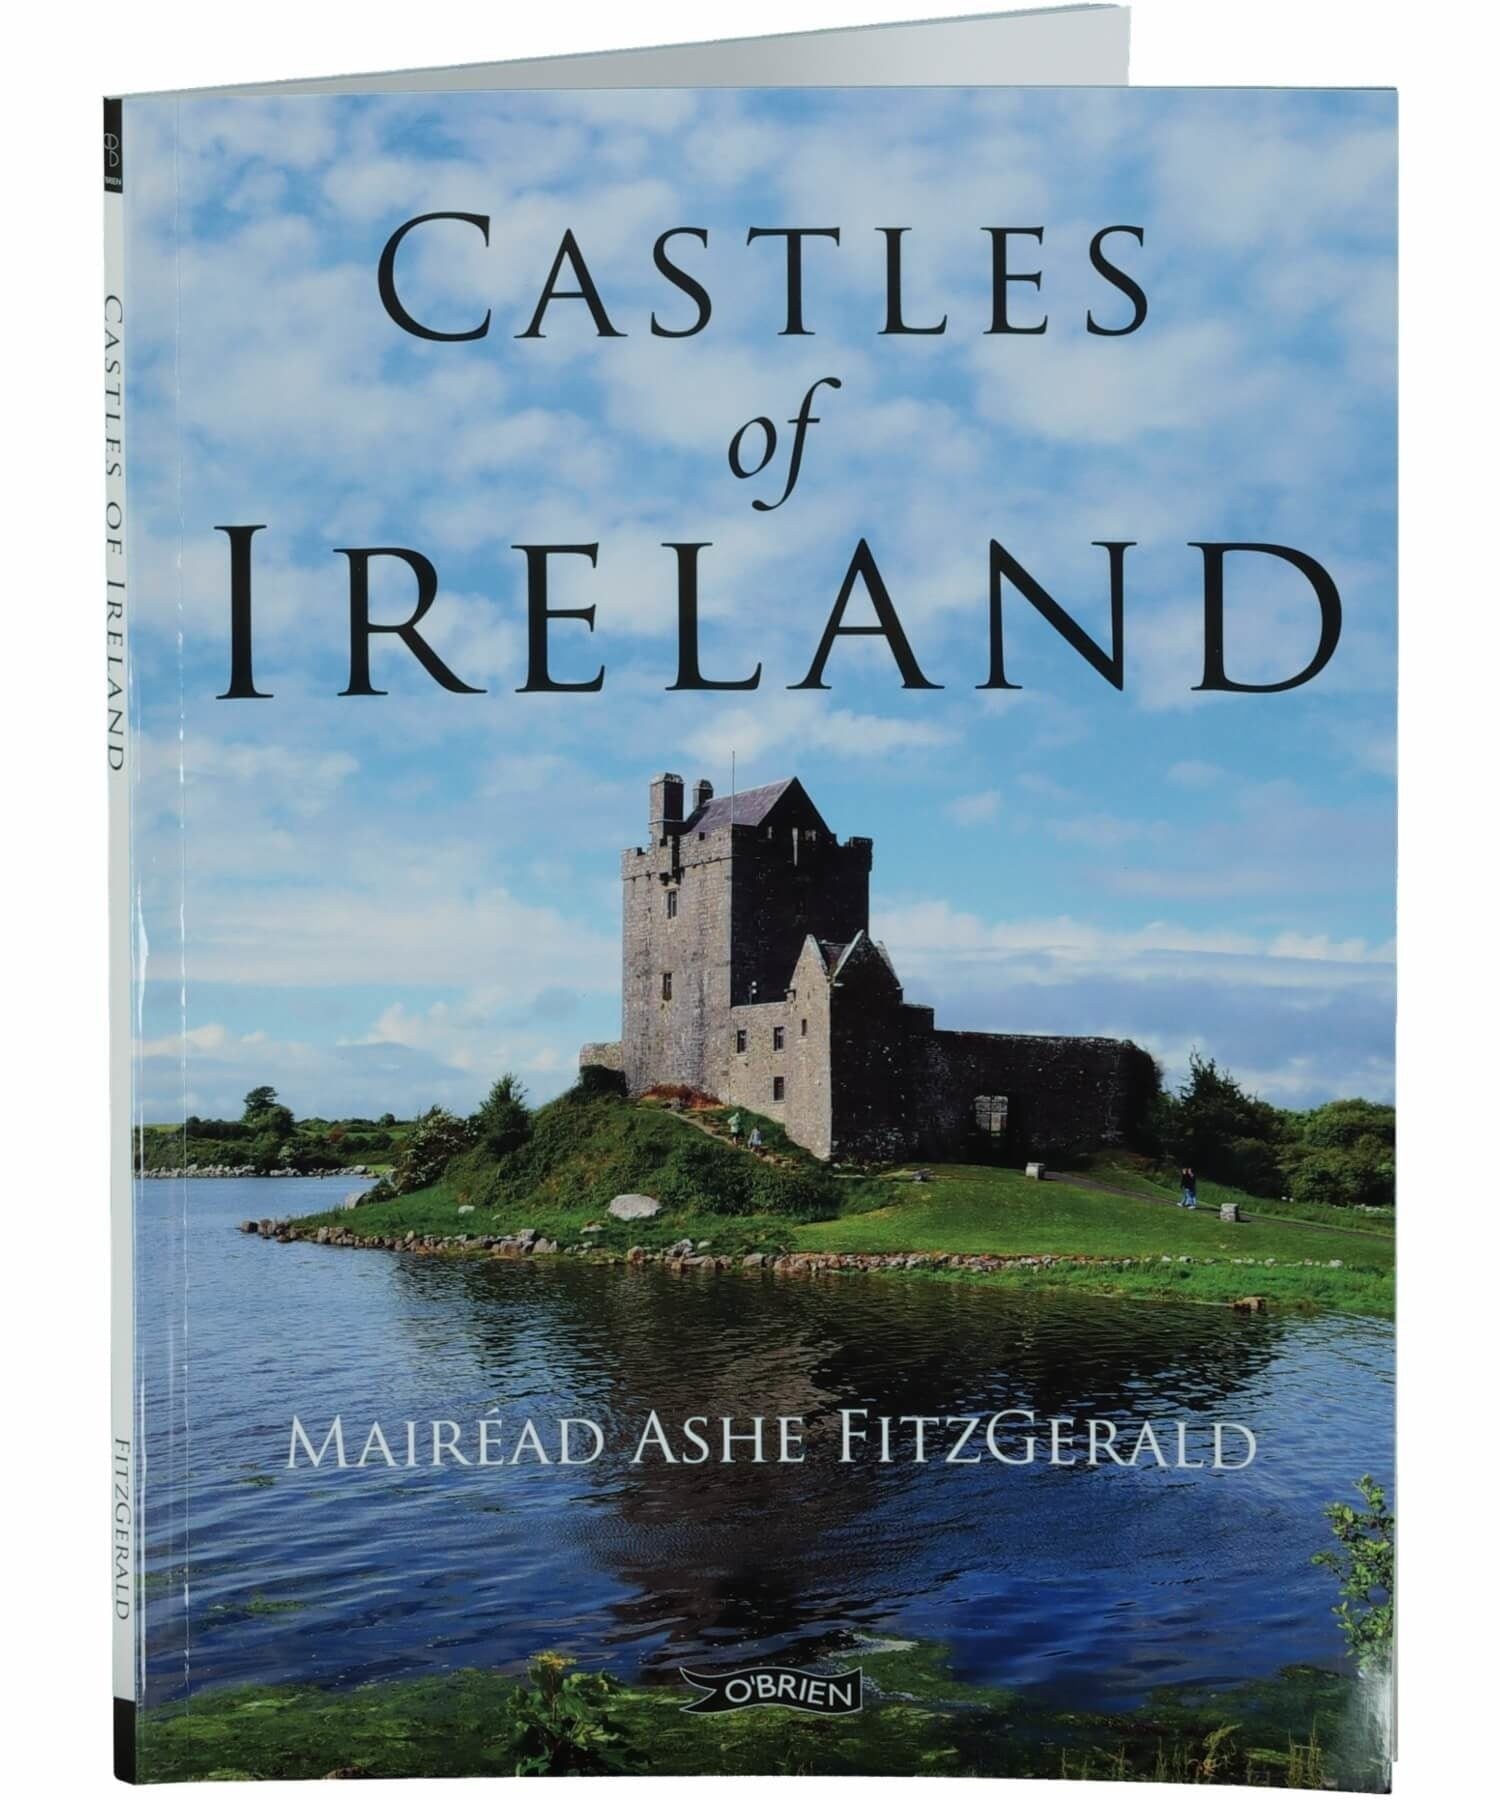 Castles of Ireland The OBrien Press Books